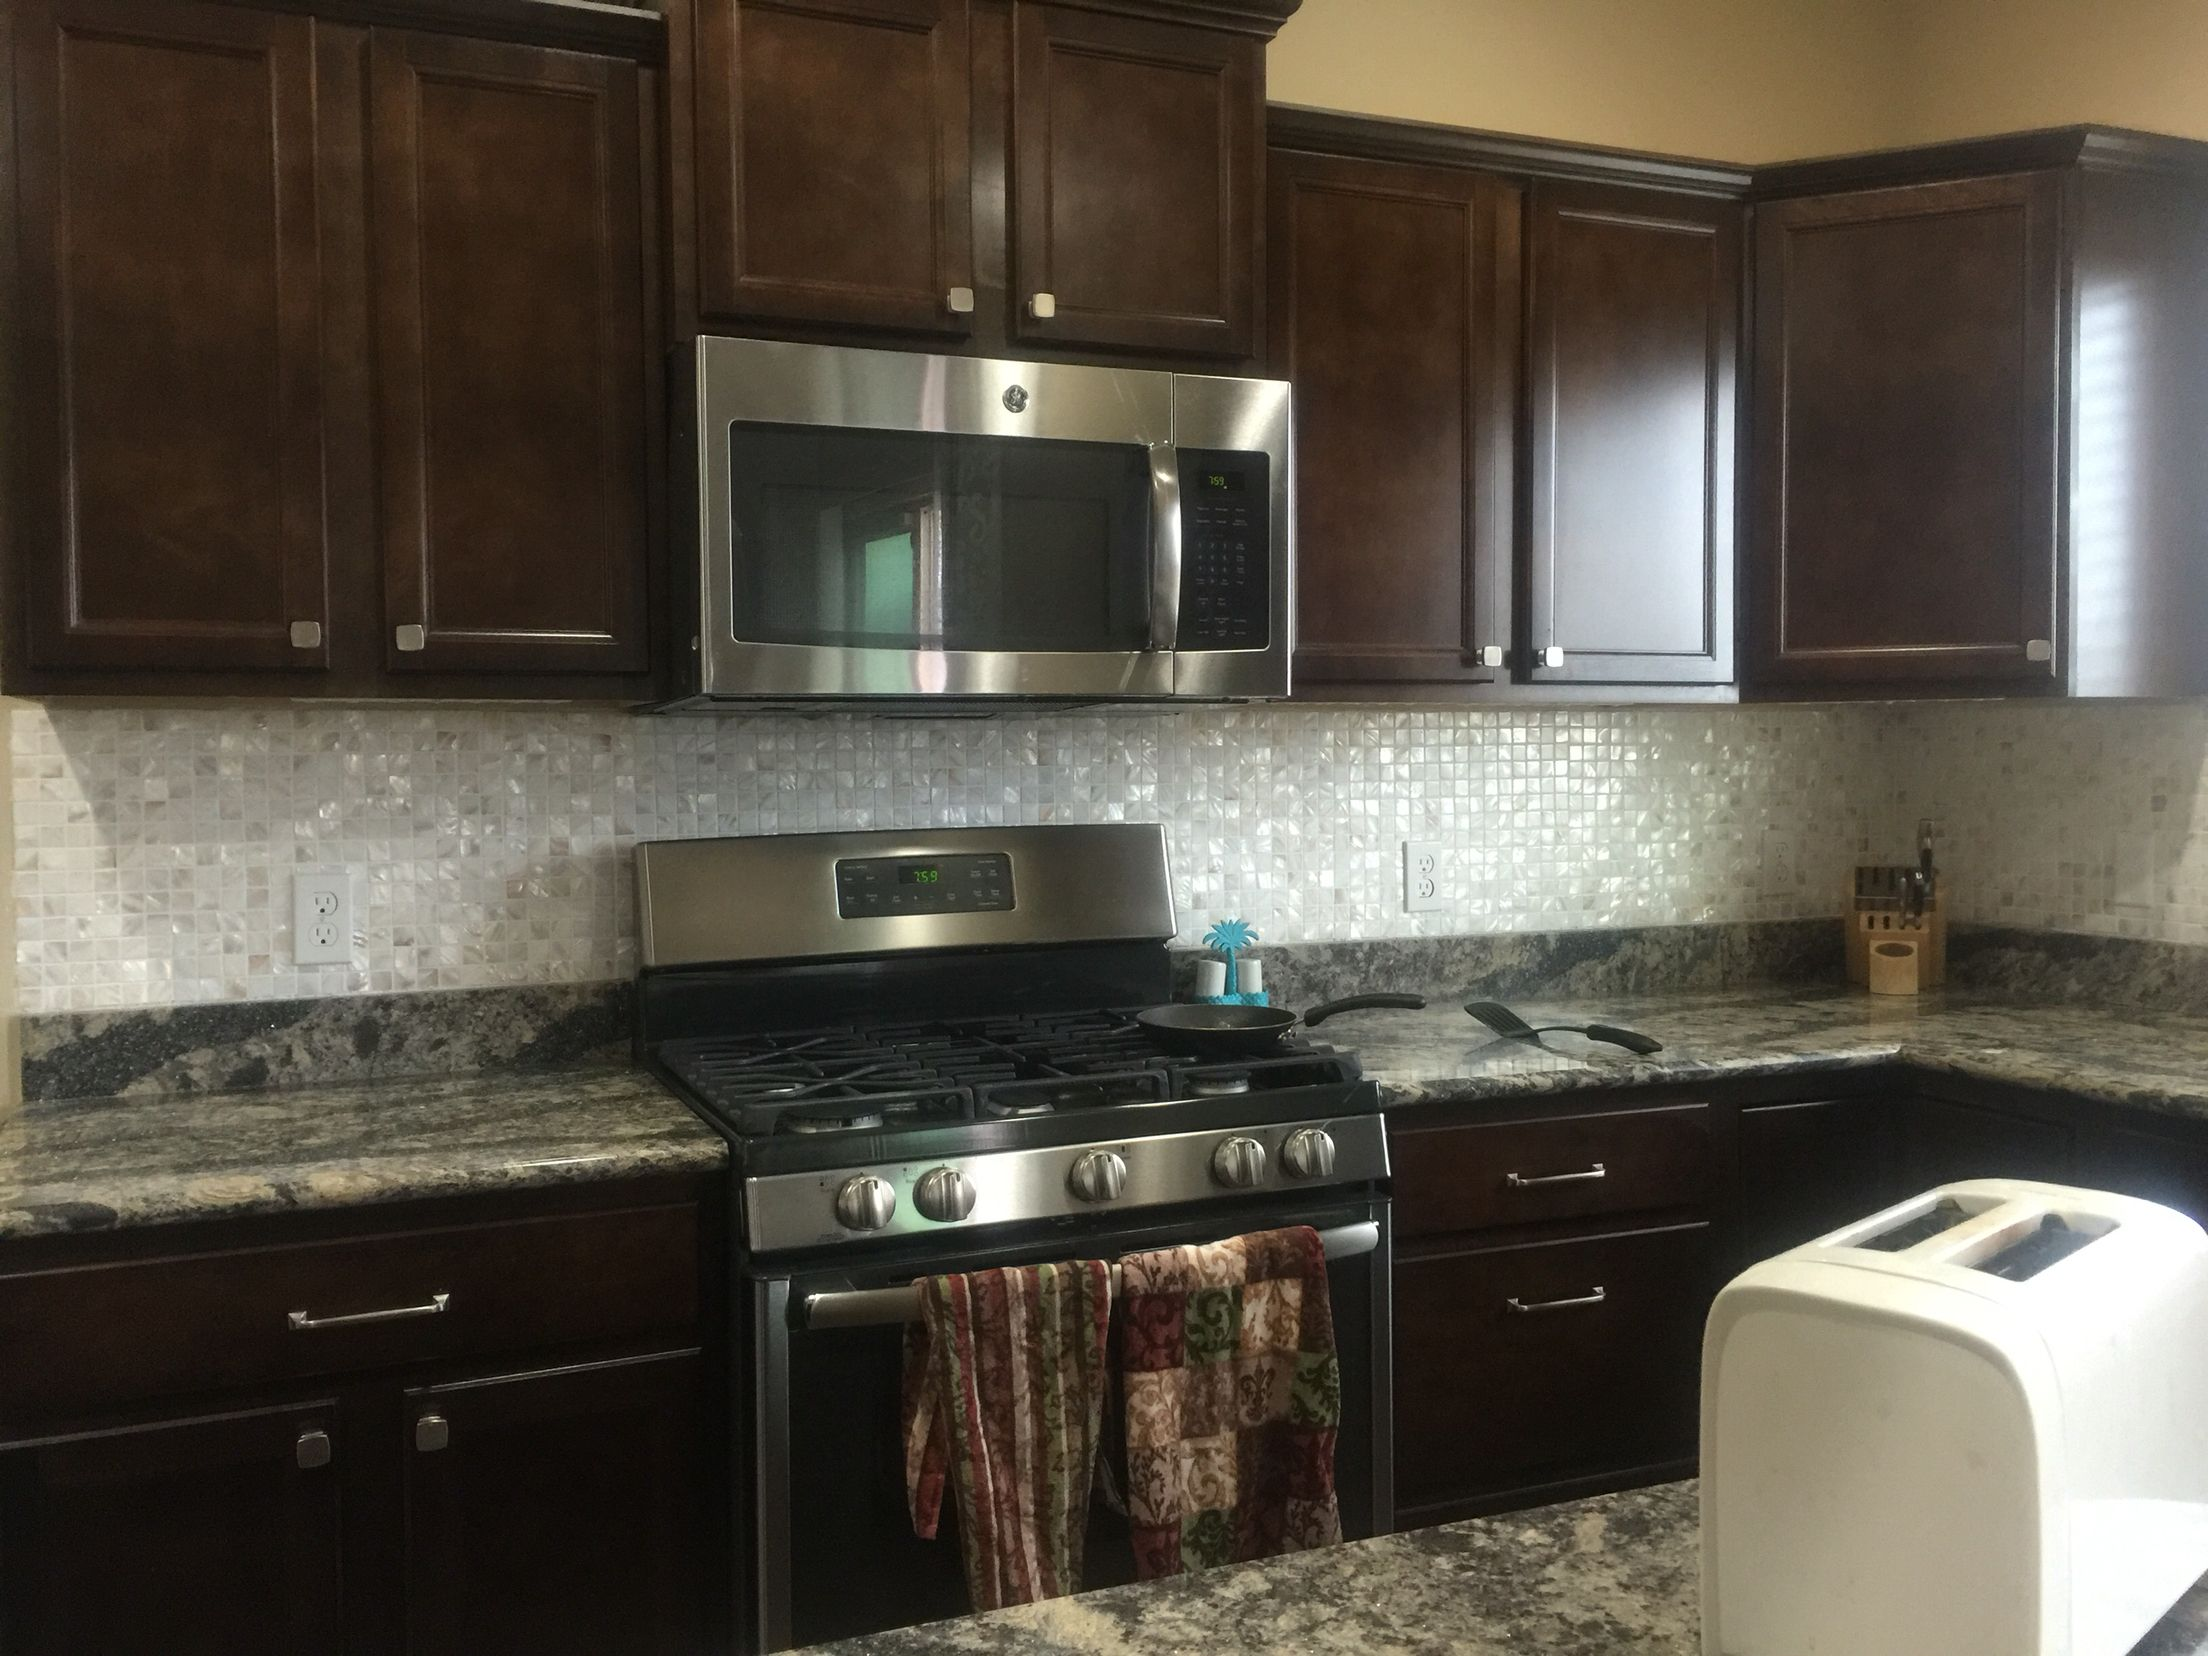 Superieur Dark Cabinets And DYI Mother Of Pearl Kitchen Backsplash.